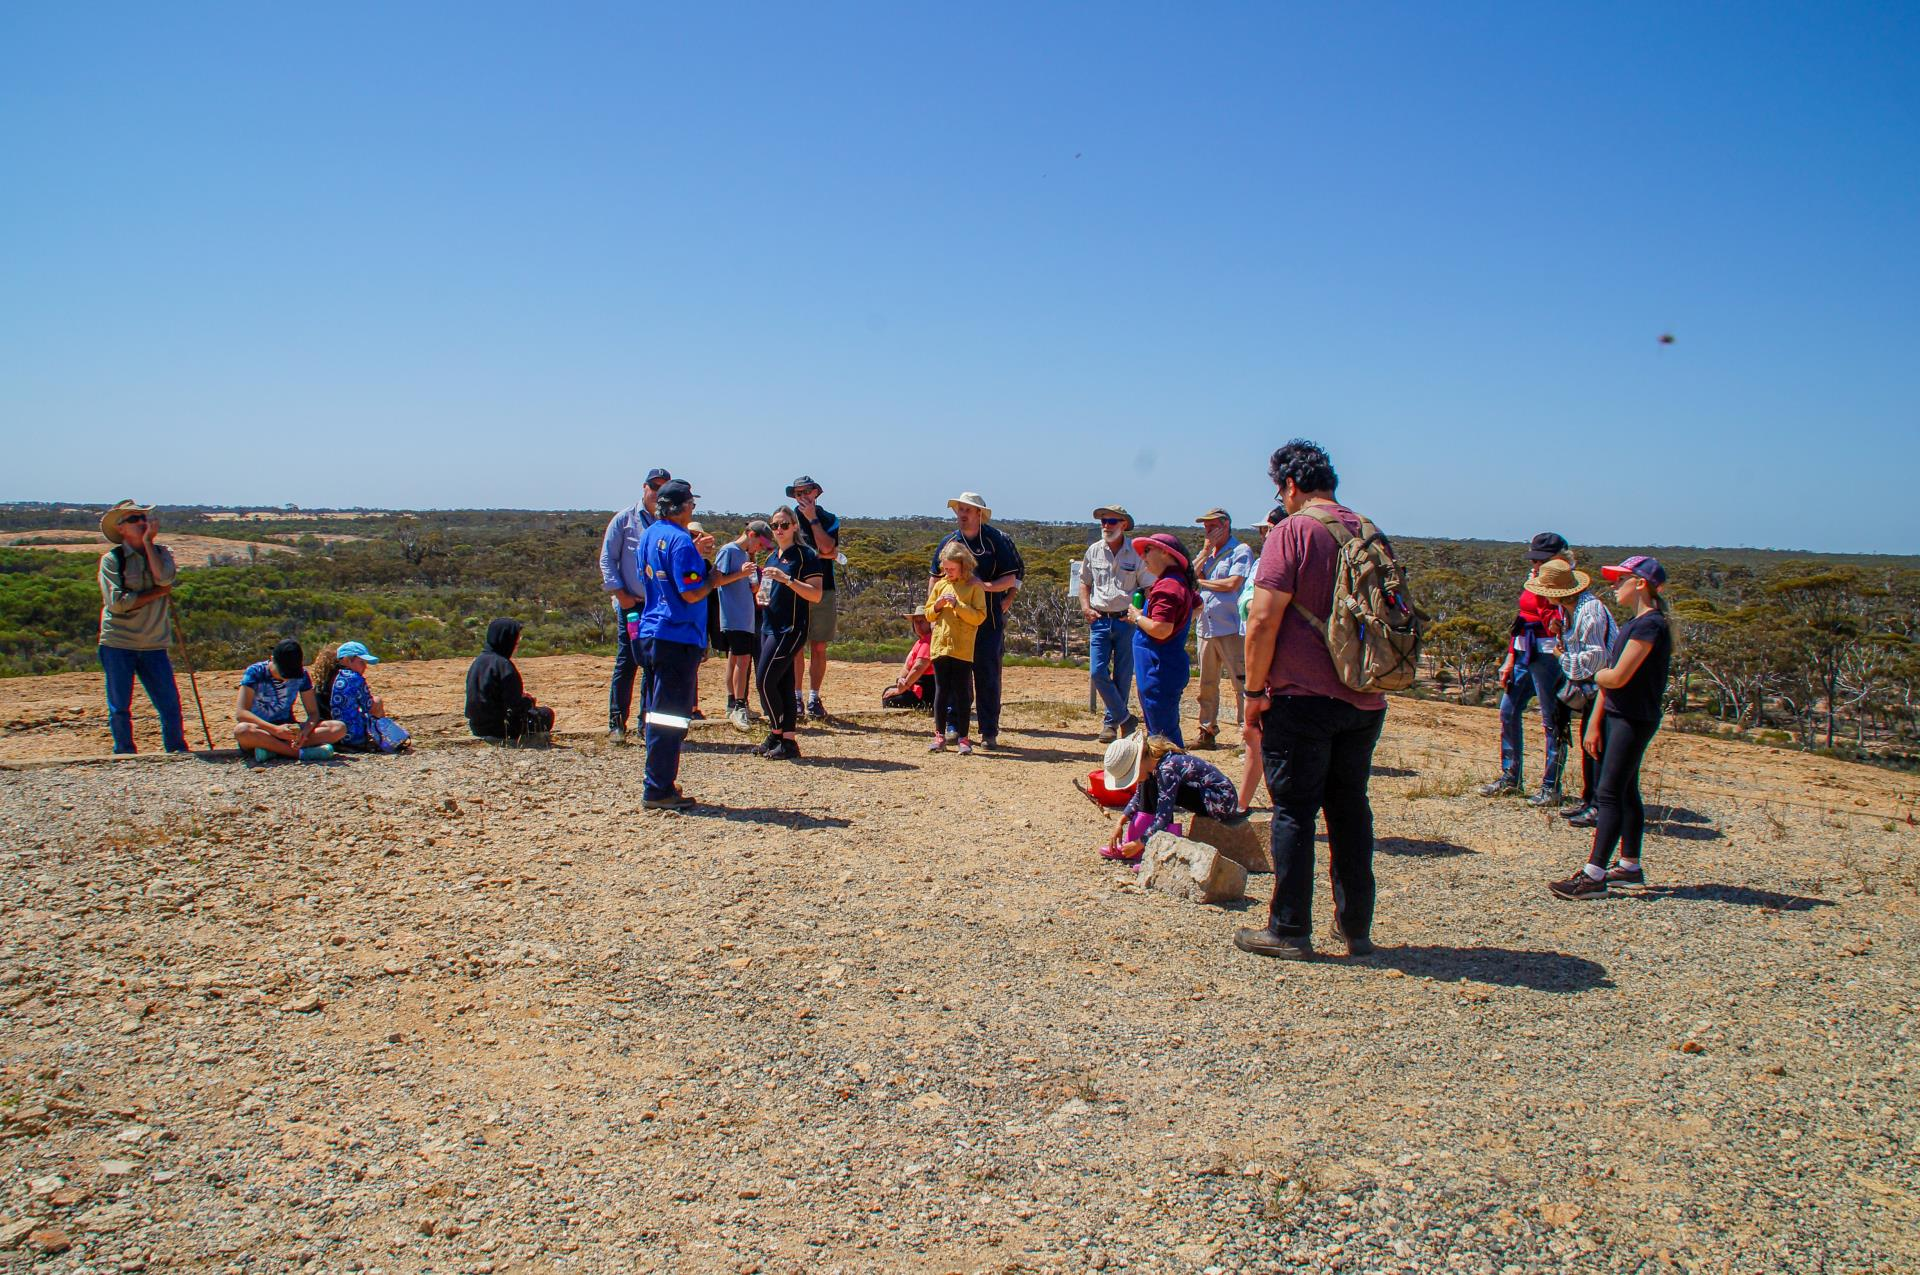 Merredin Peak Cultural Tour a Huge Success!